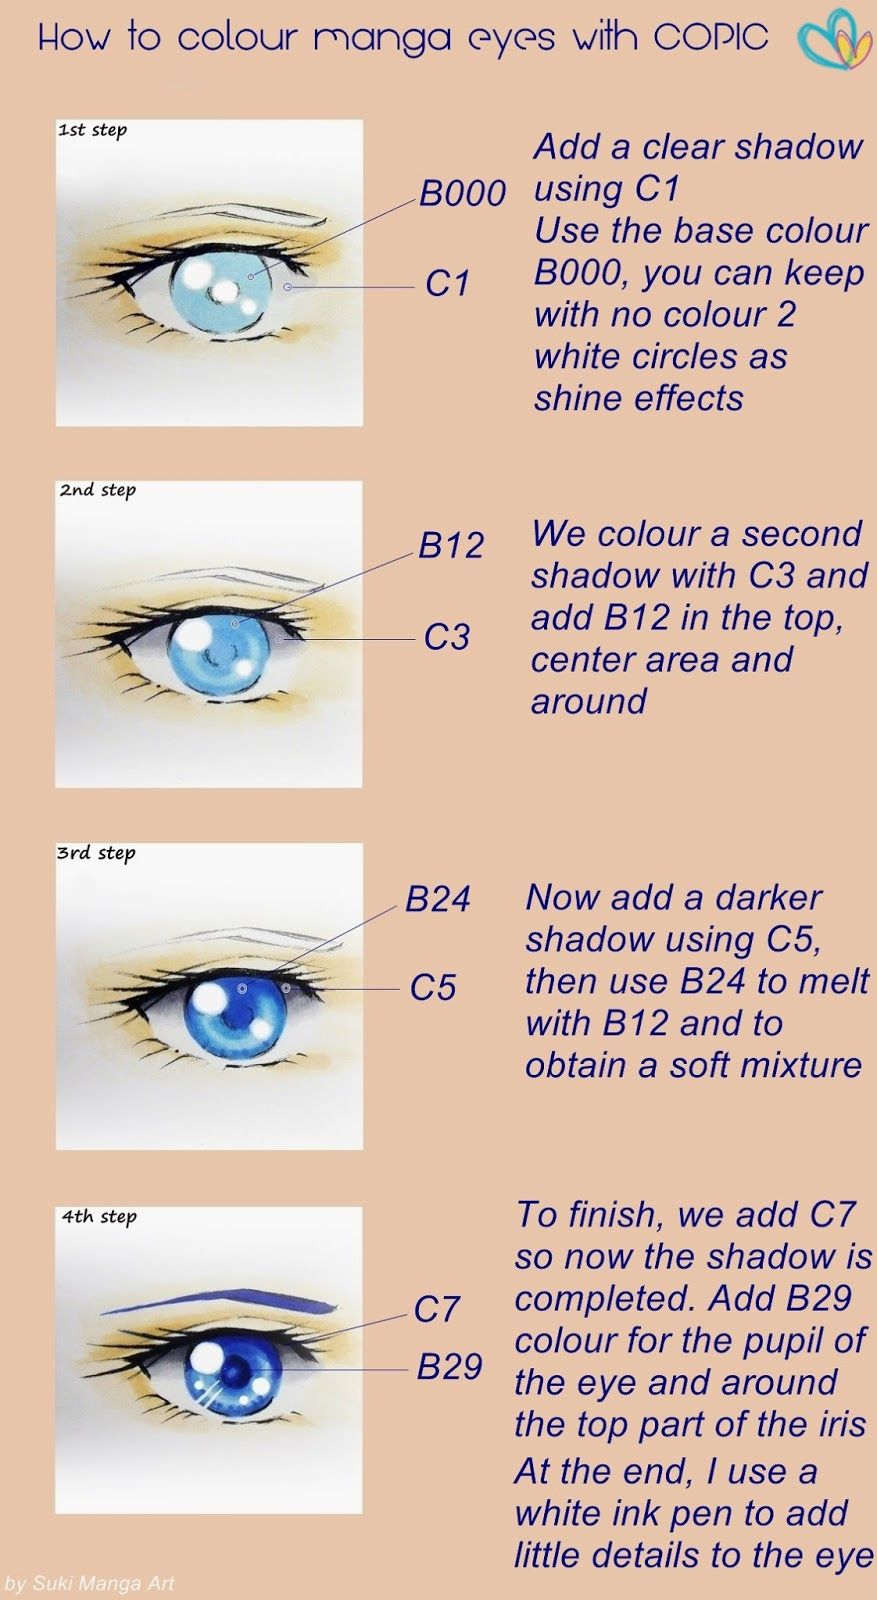 Copic Marker Europe: Tutorial, How to colour manga eyes with Copic ...